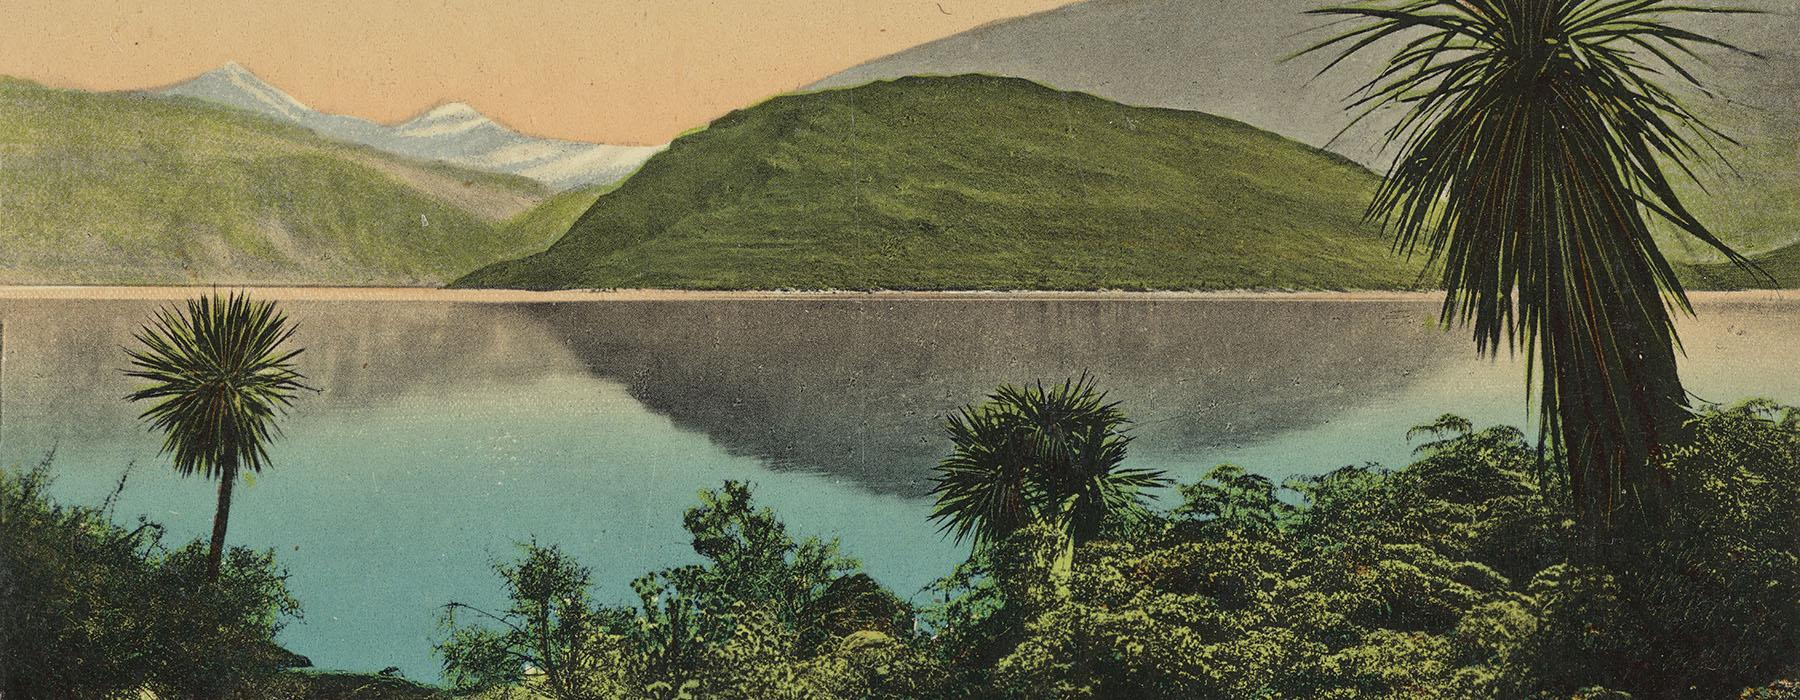 Detail of a colour postcard of Lake Wanaka with bush in the foreground, the lake in the middle, and hills in the background